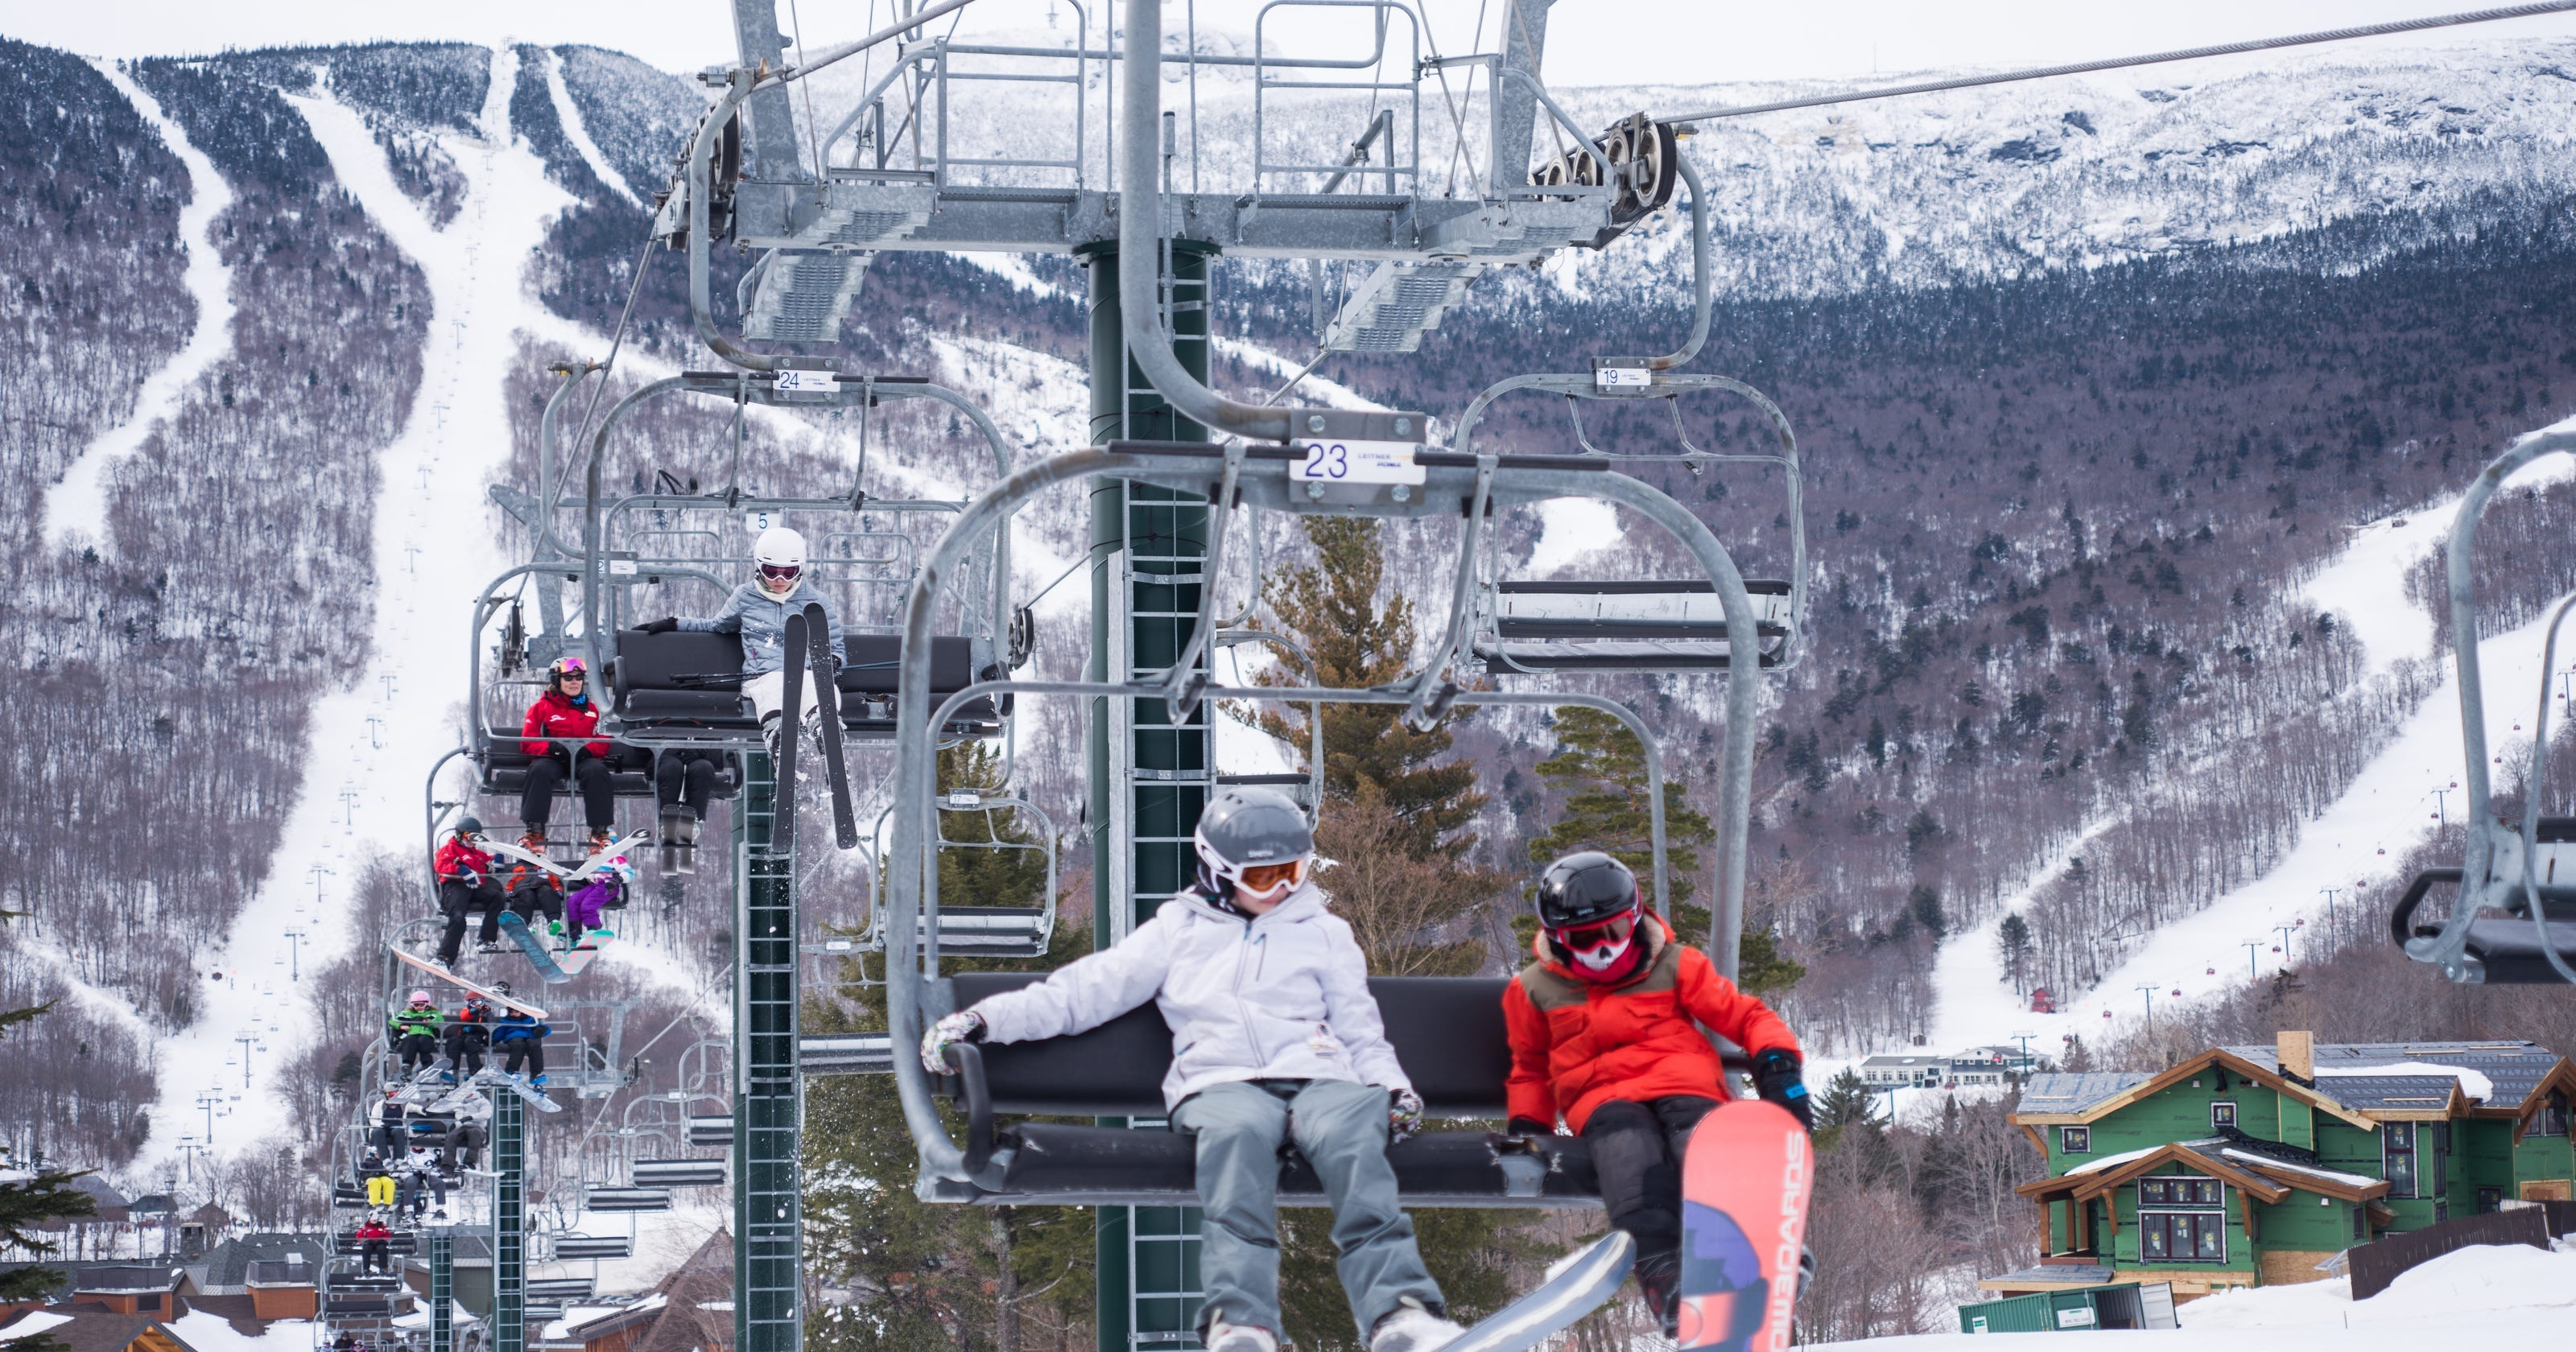 VT industry welcomes news of Stowe sale to Vail